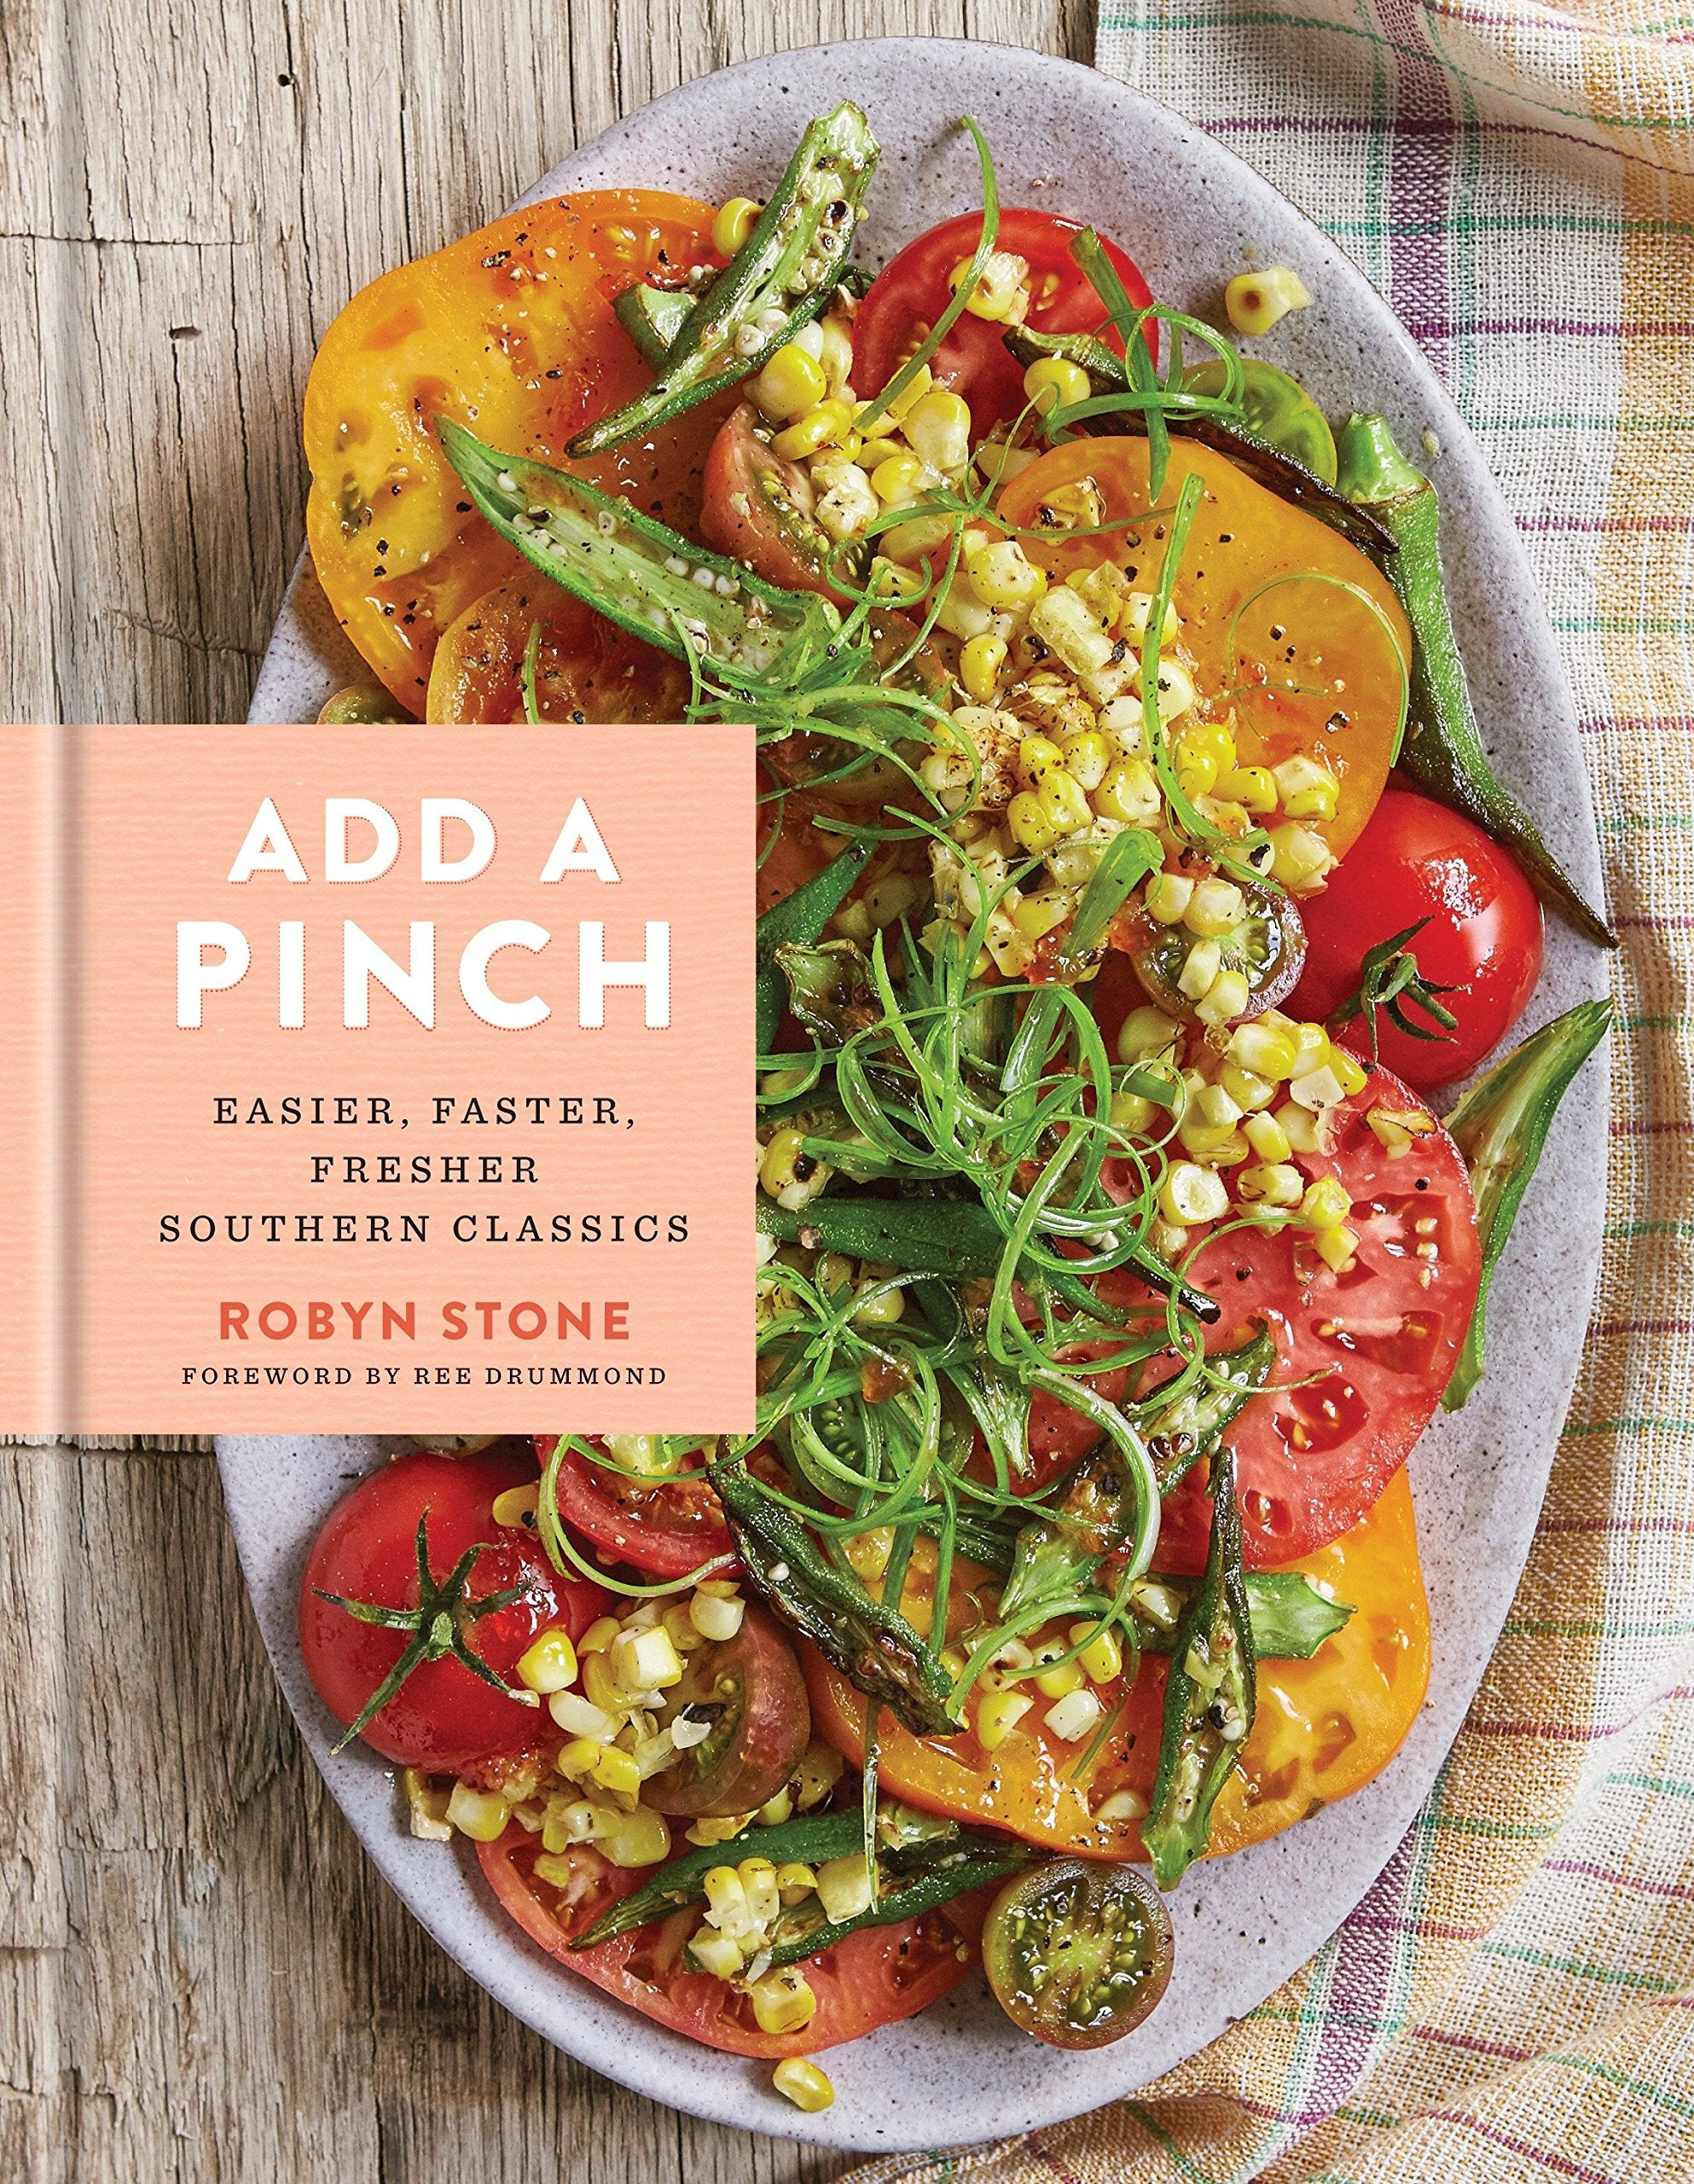 Book - Add a Pinch: Easier, Faster, Fresher Southern Classics: A Cookbook